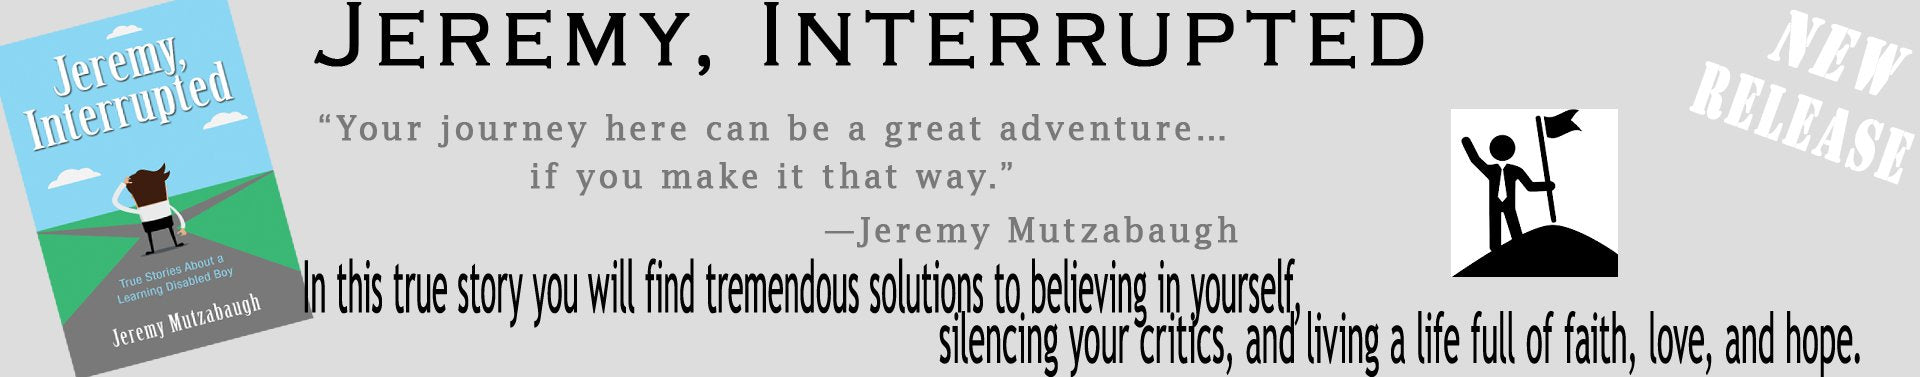 Jeremy Interrupted, by Jeremy Mutzabaugh